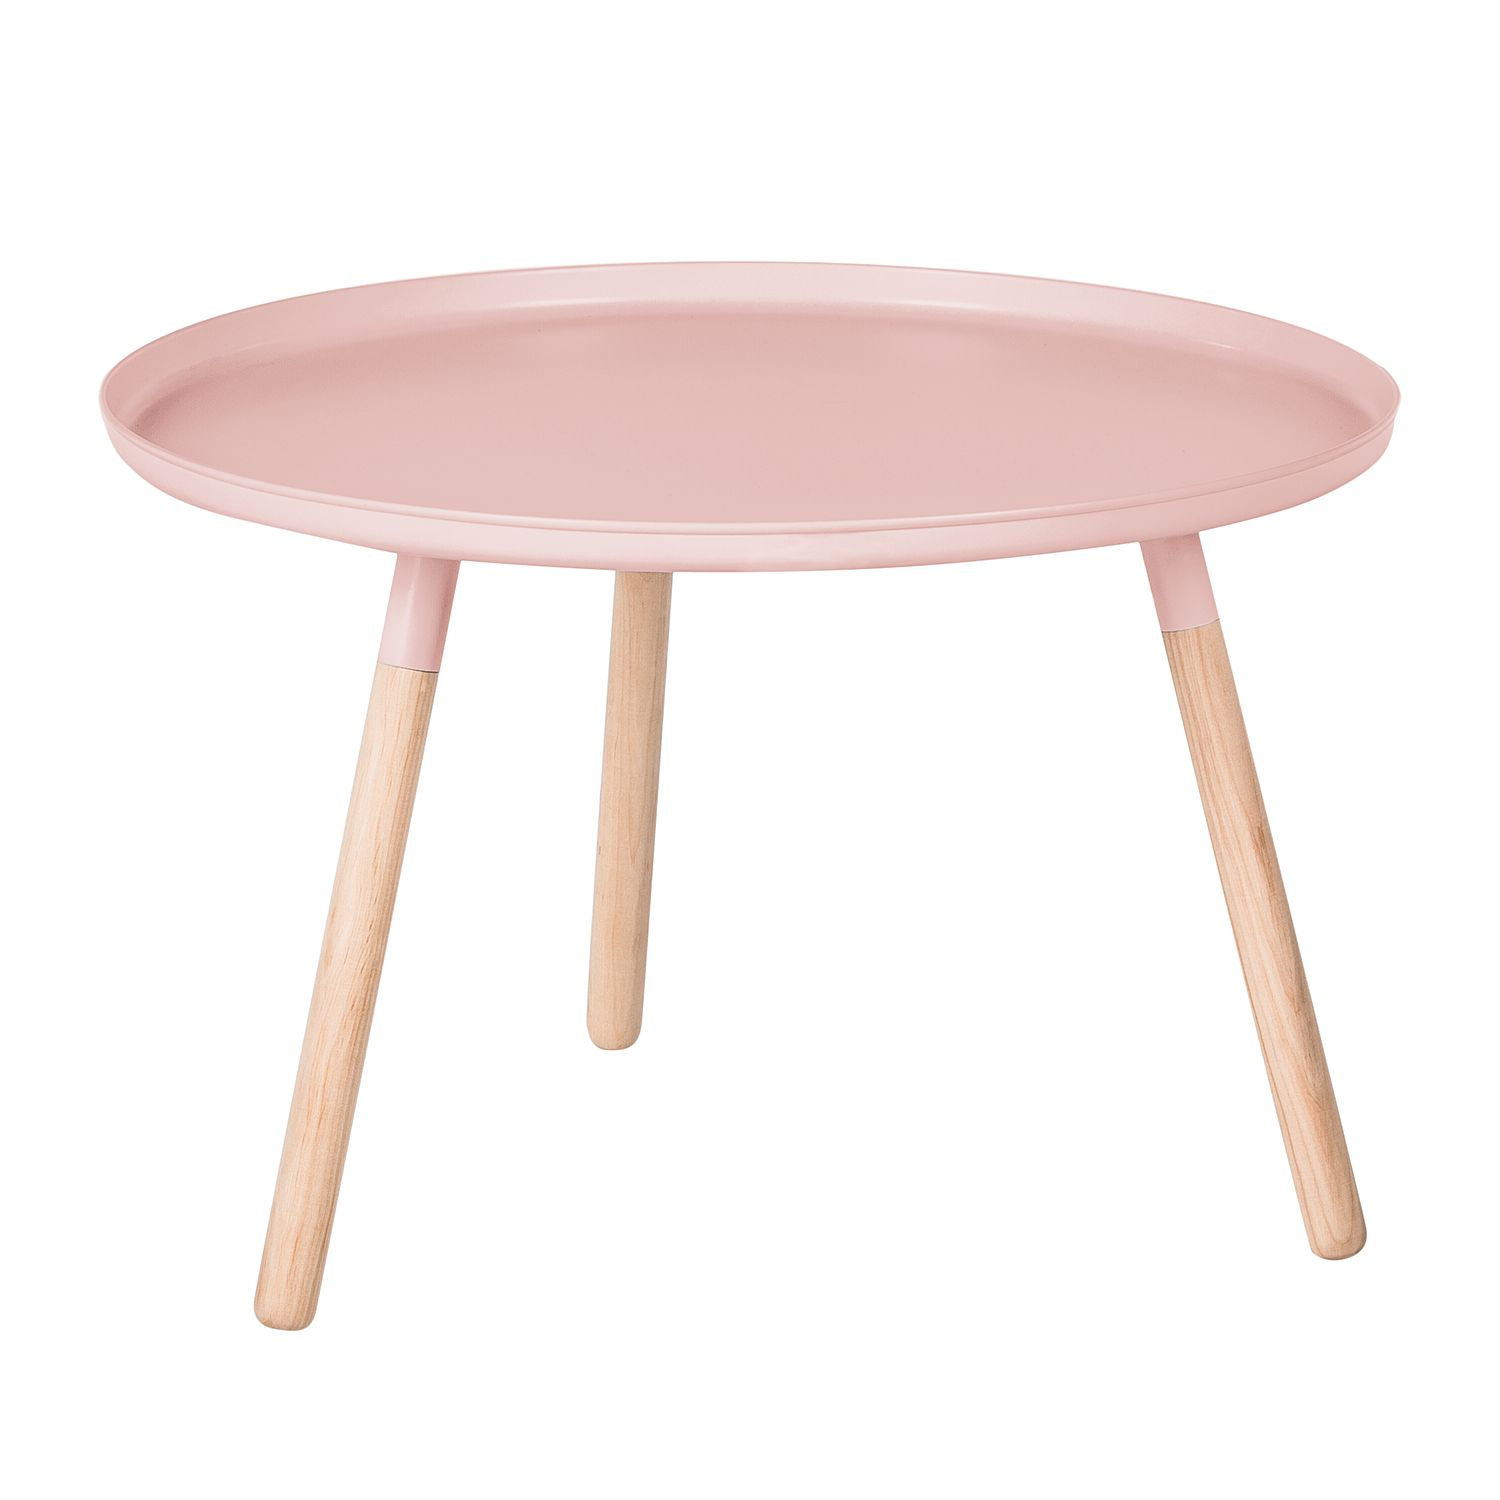 Table d'appoint Mika III - Mauve, Morteens